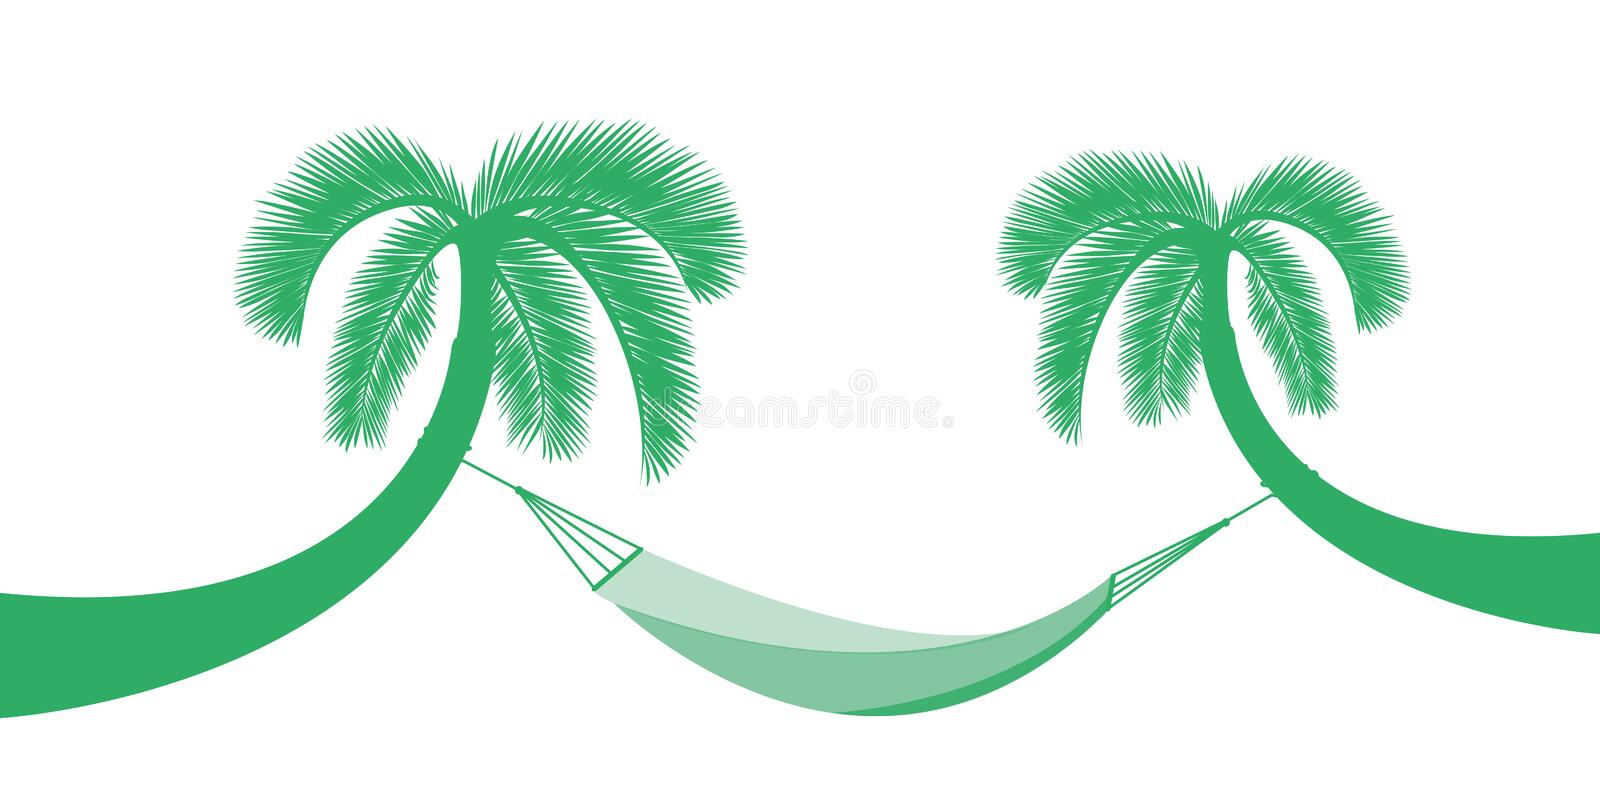 Two palm trees with hammock isolated on white background for summer holiday design stock illustration